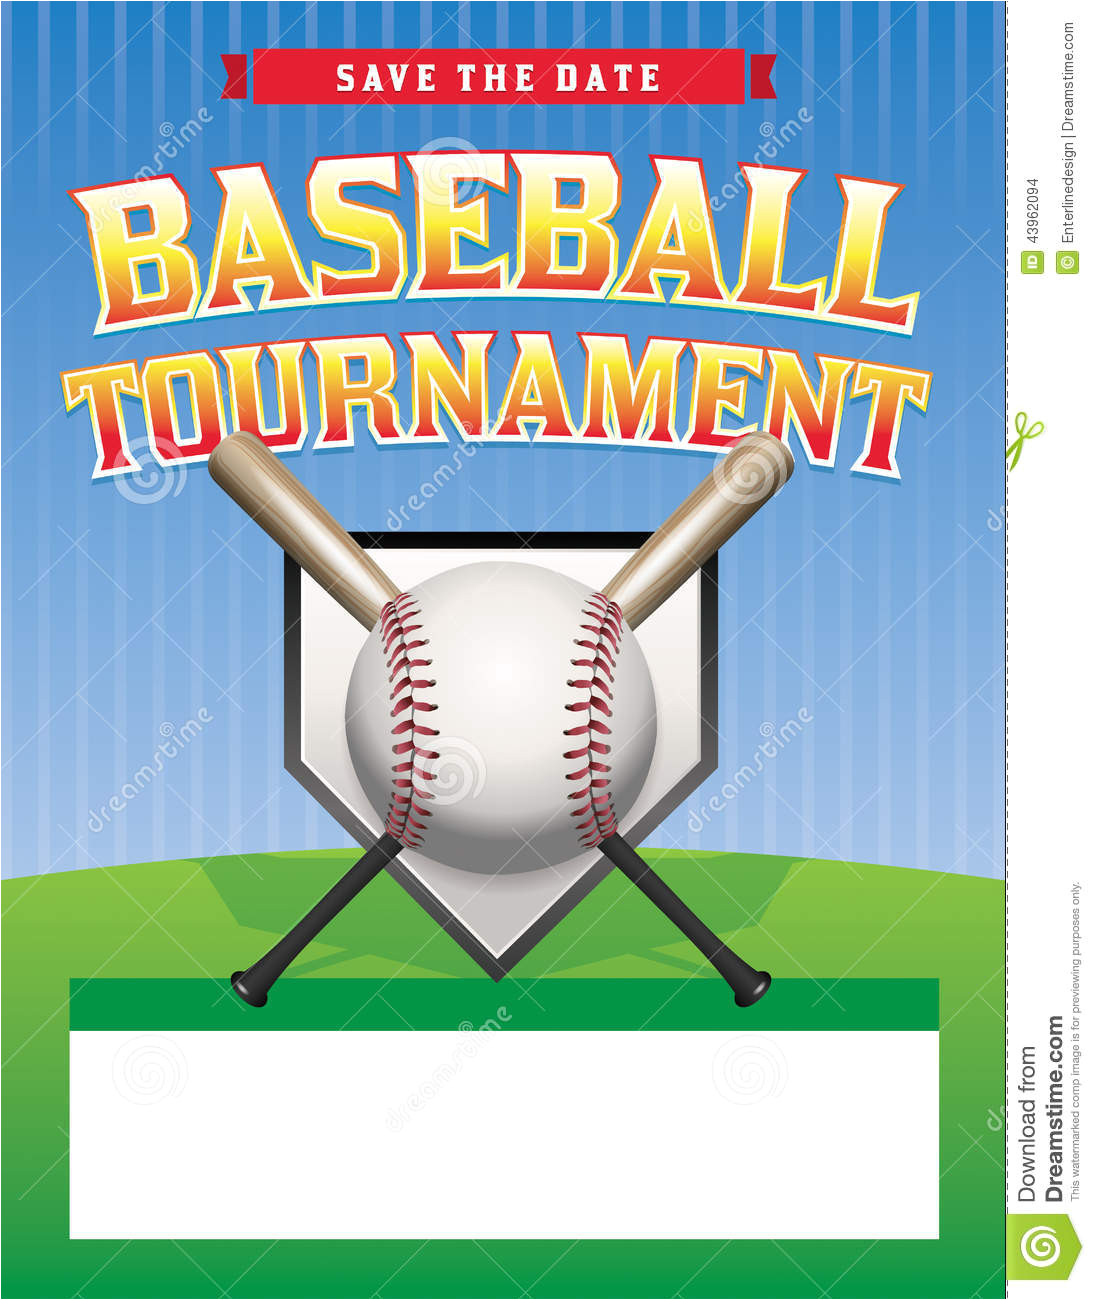 stock illustration baseball tournament illustration flyer room copy space vector eps available eps file contains transparencies gradient image43962094